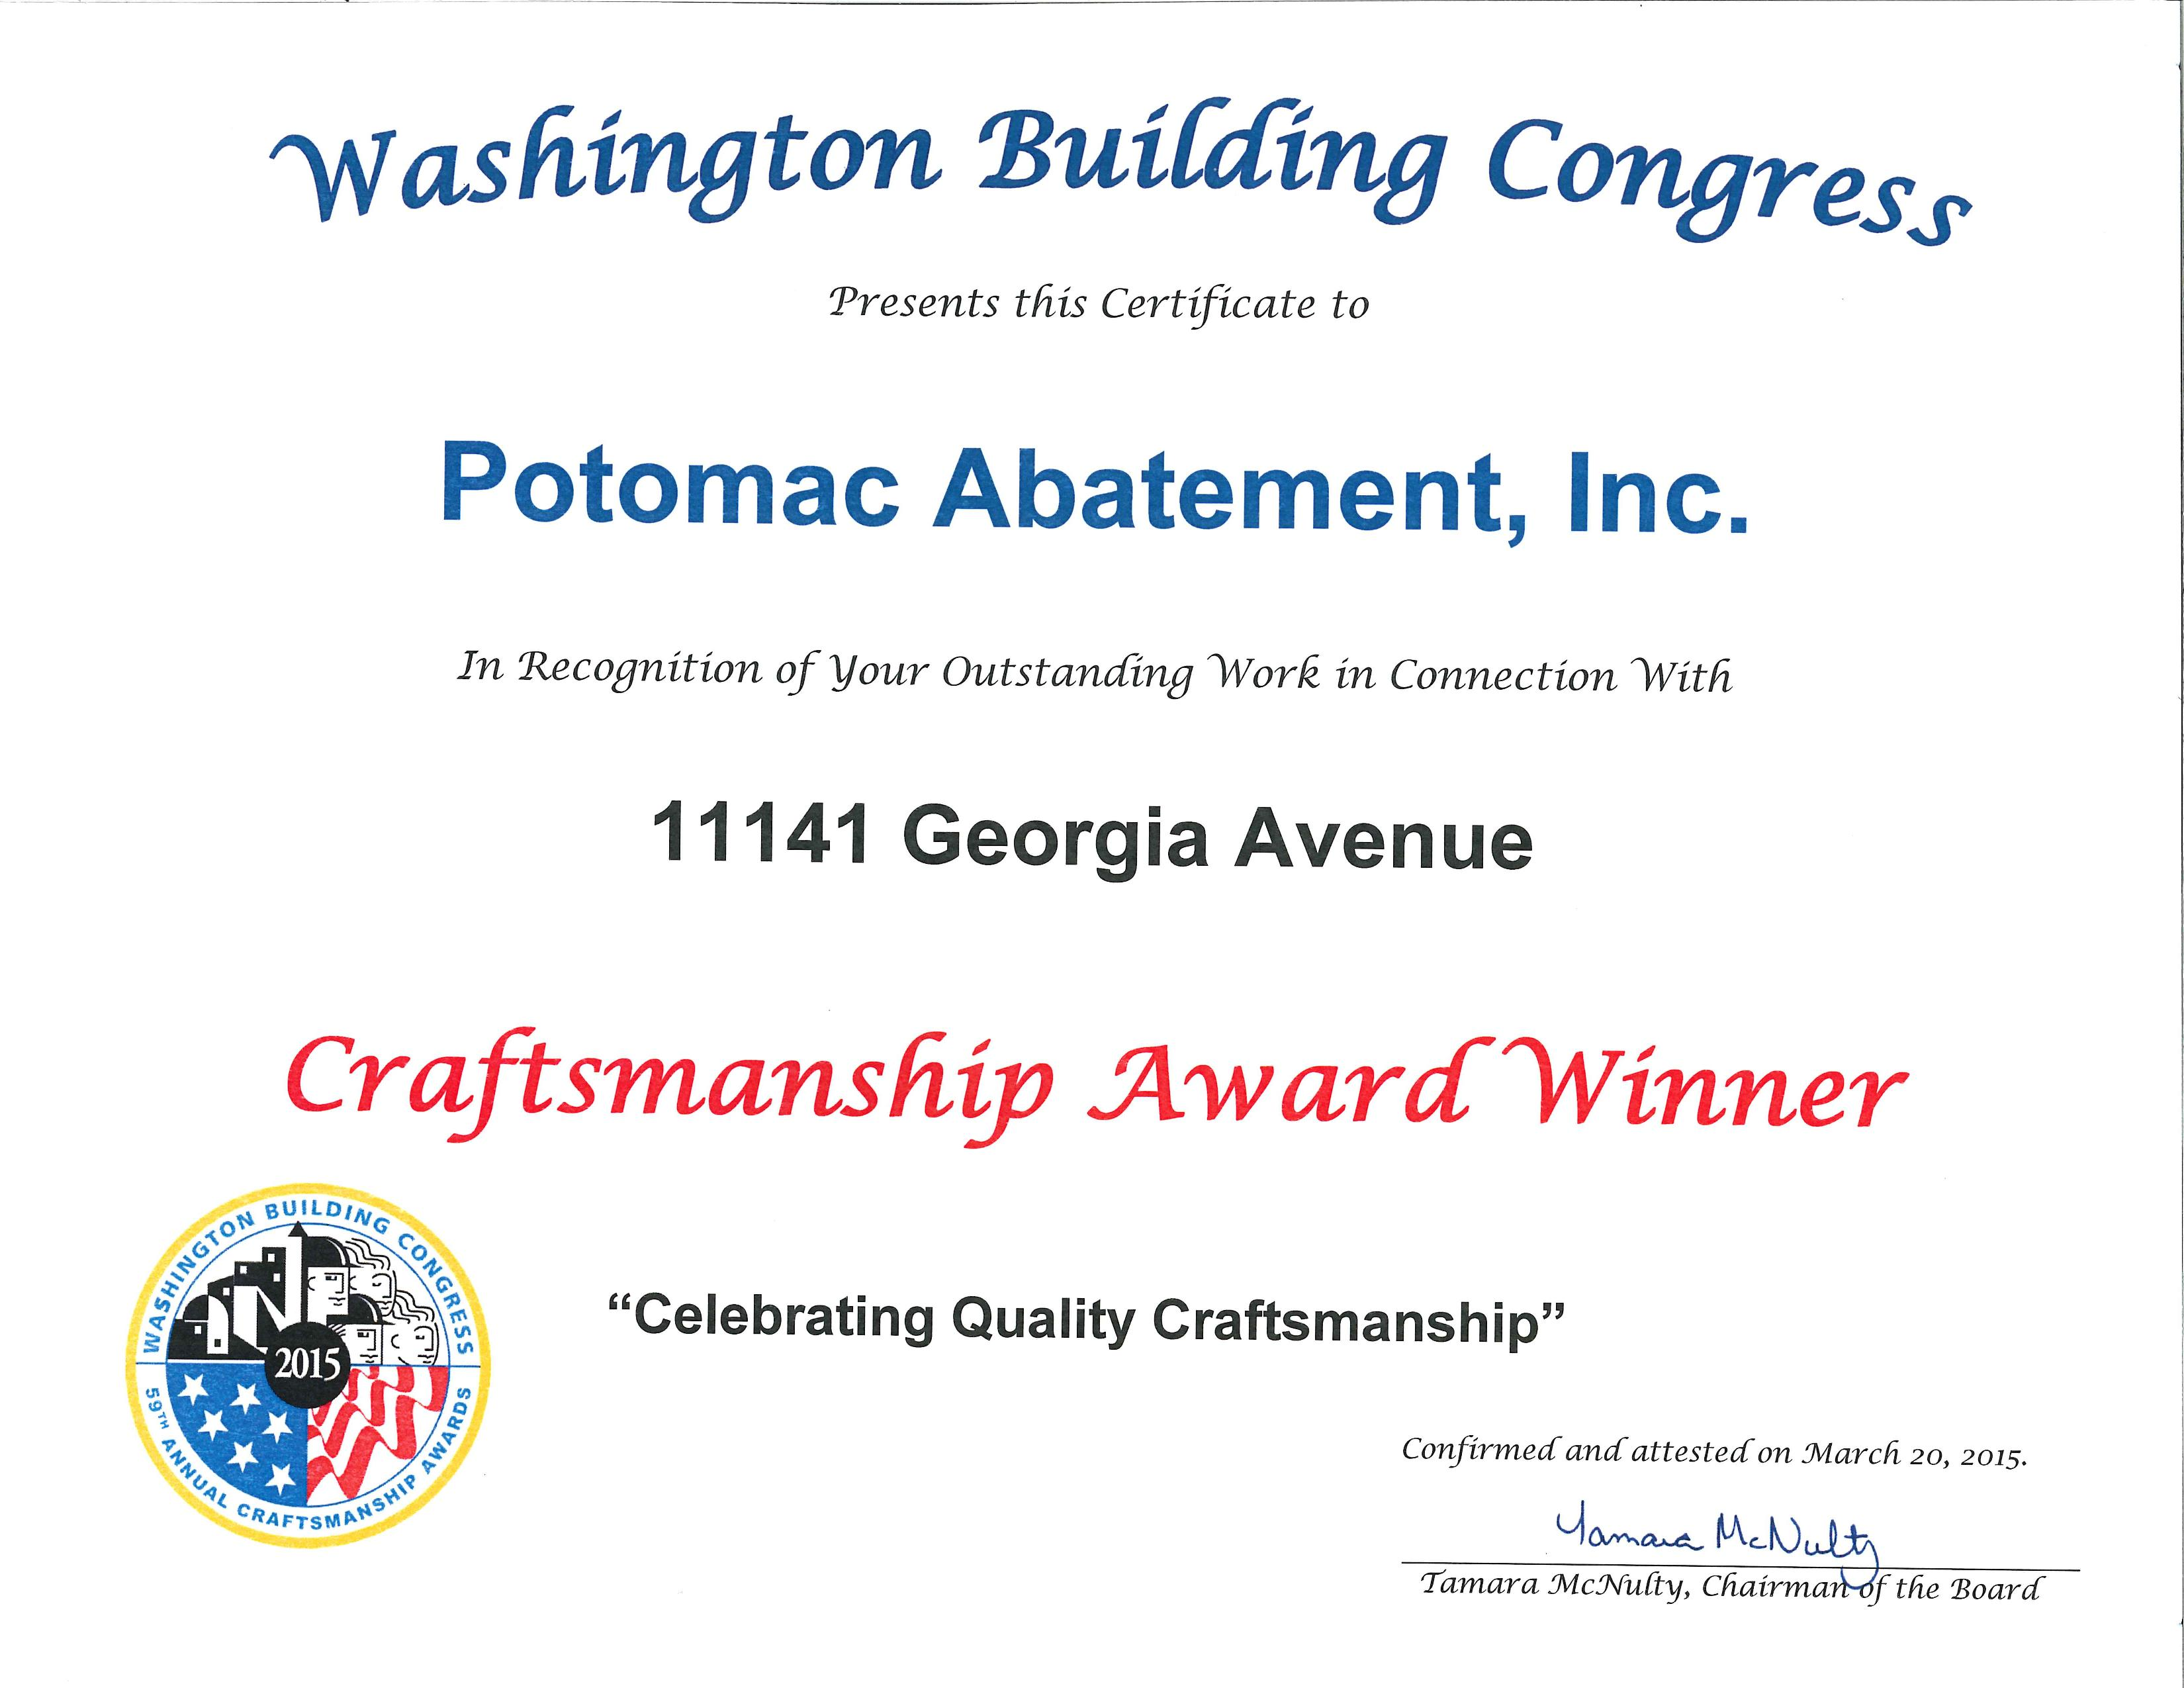 Washington Building Congress craftsmanship award